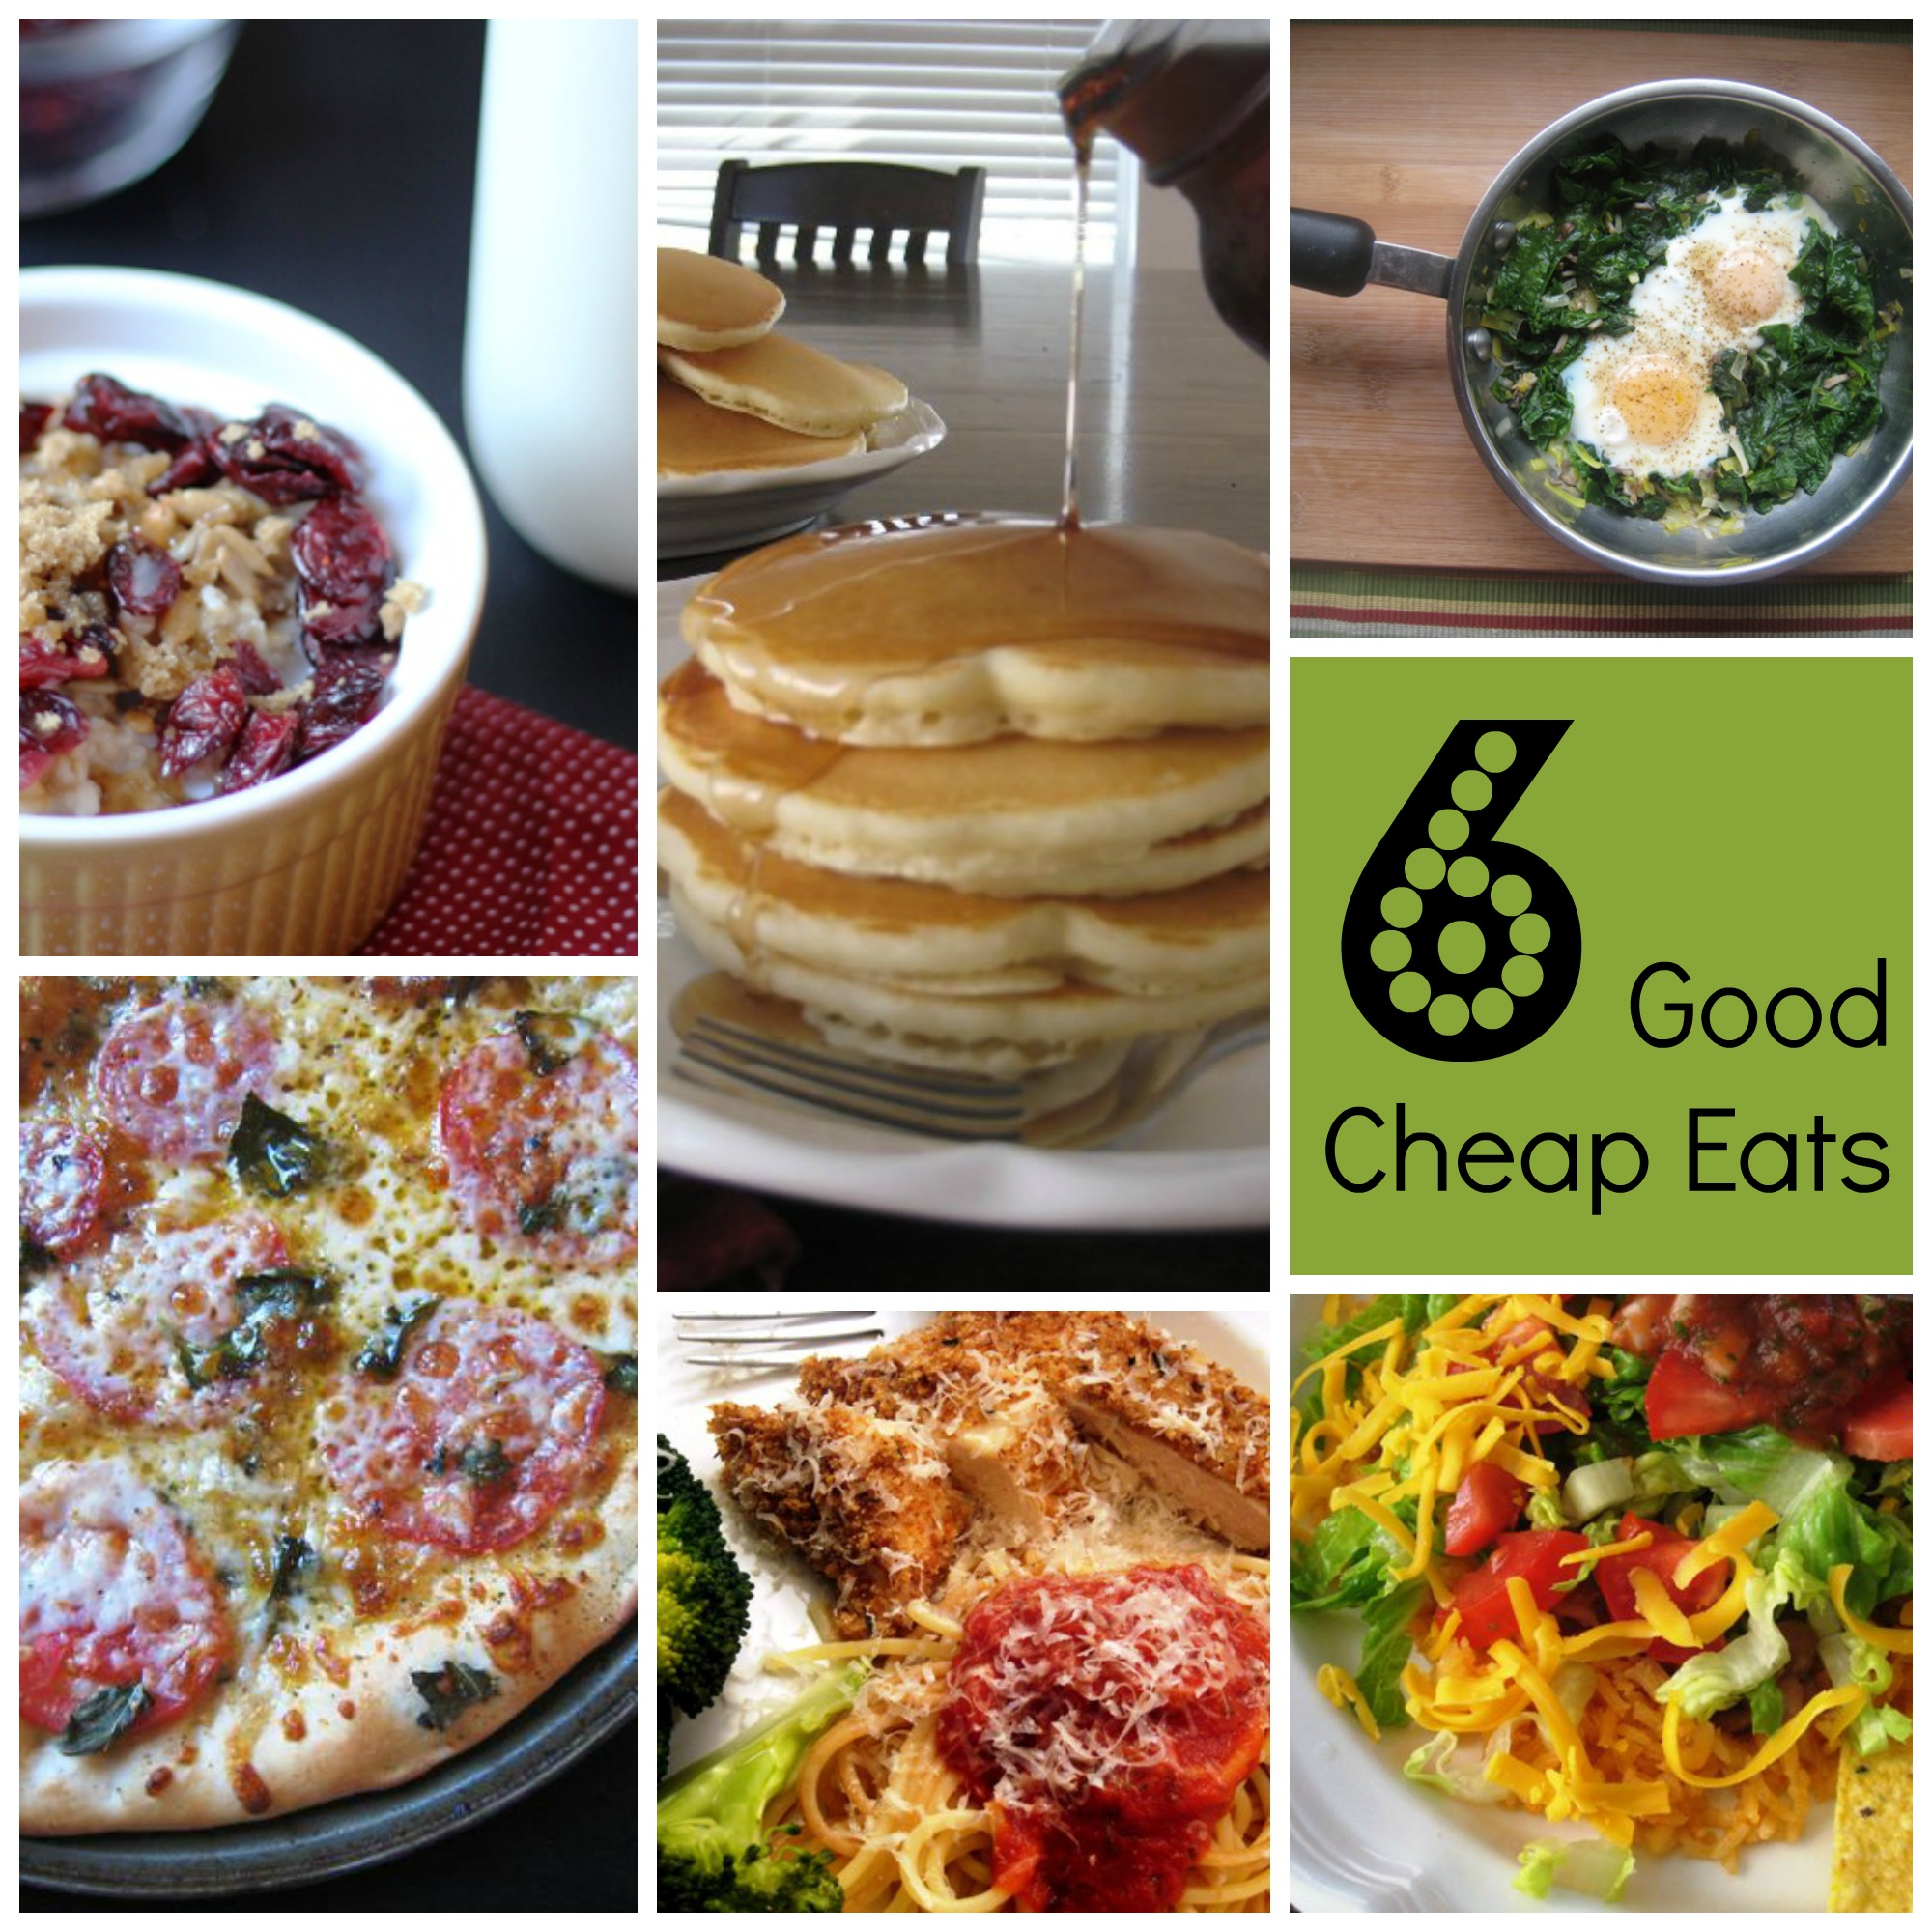 Good Cheap Quick Meals